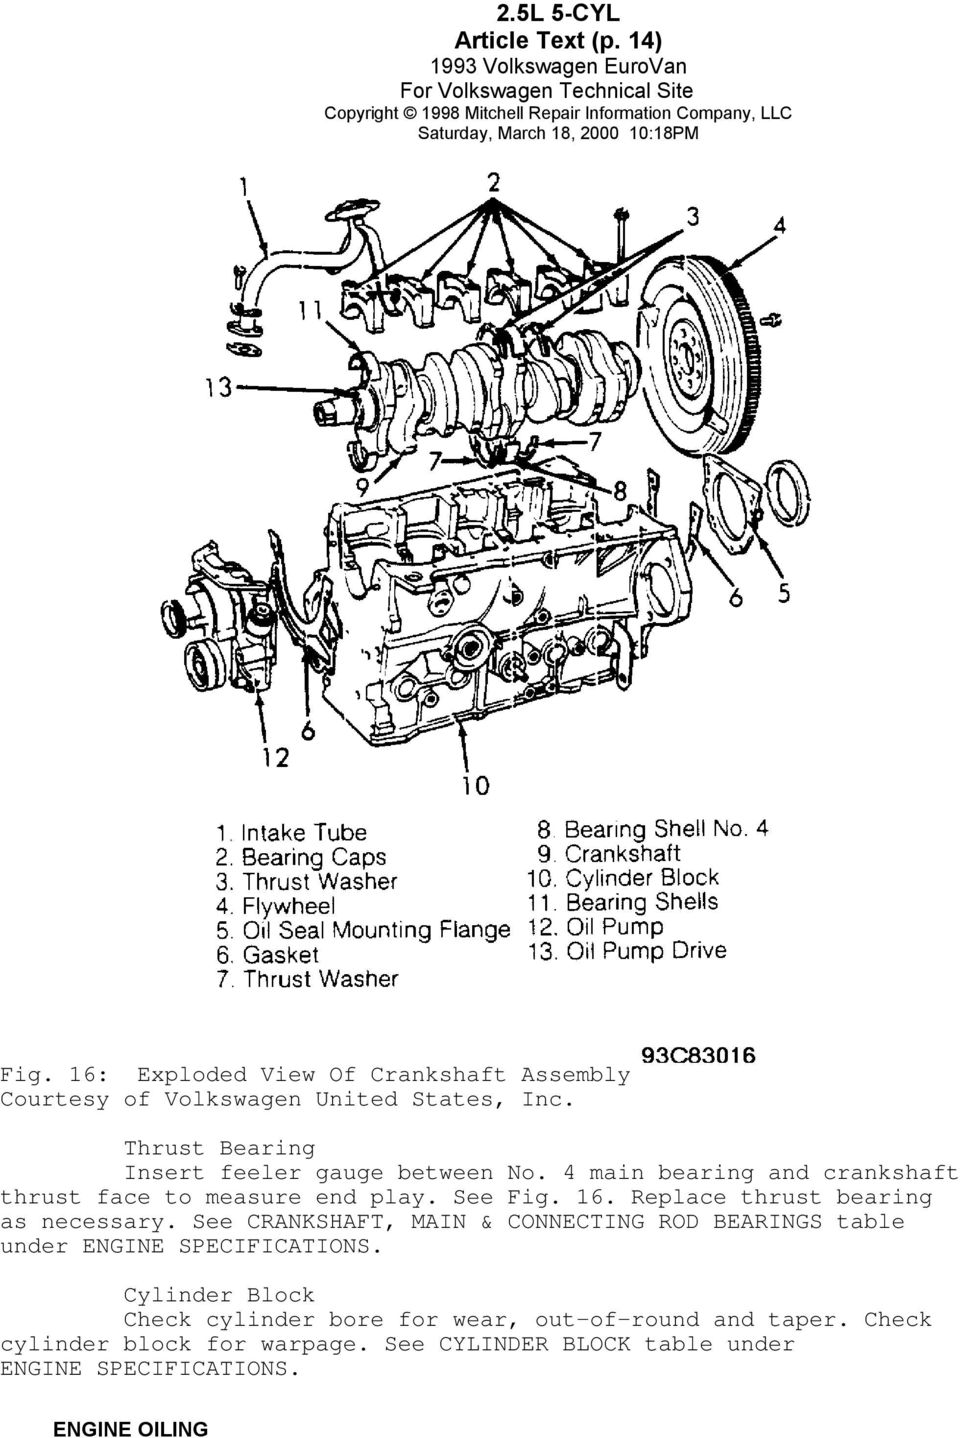 1993 Volkswagen Engines 25l 5 Cylinder Eurovan Pdf Pathfinder 3 5l Engine Diagram See Crankshaft Main Connecting Rod Bearings Table Under Specifications